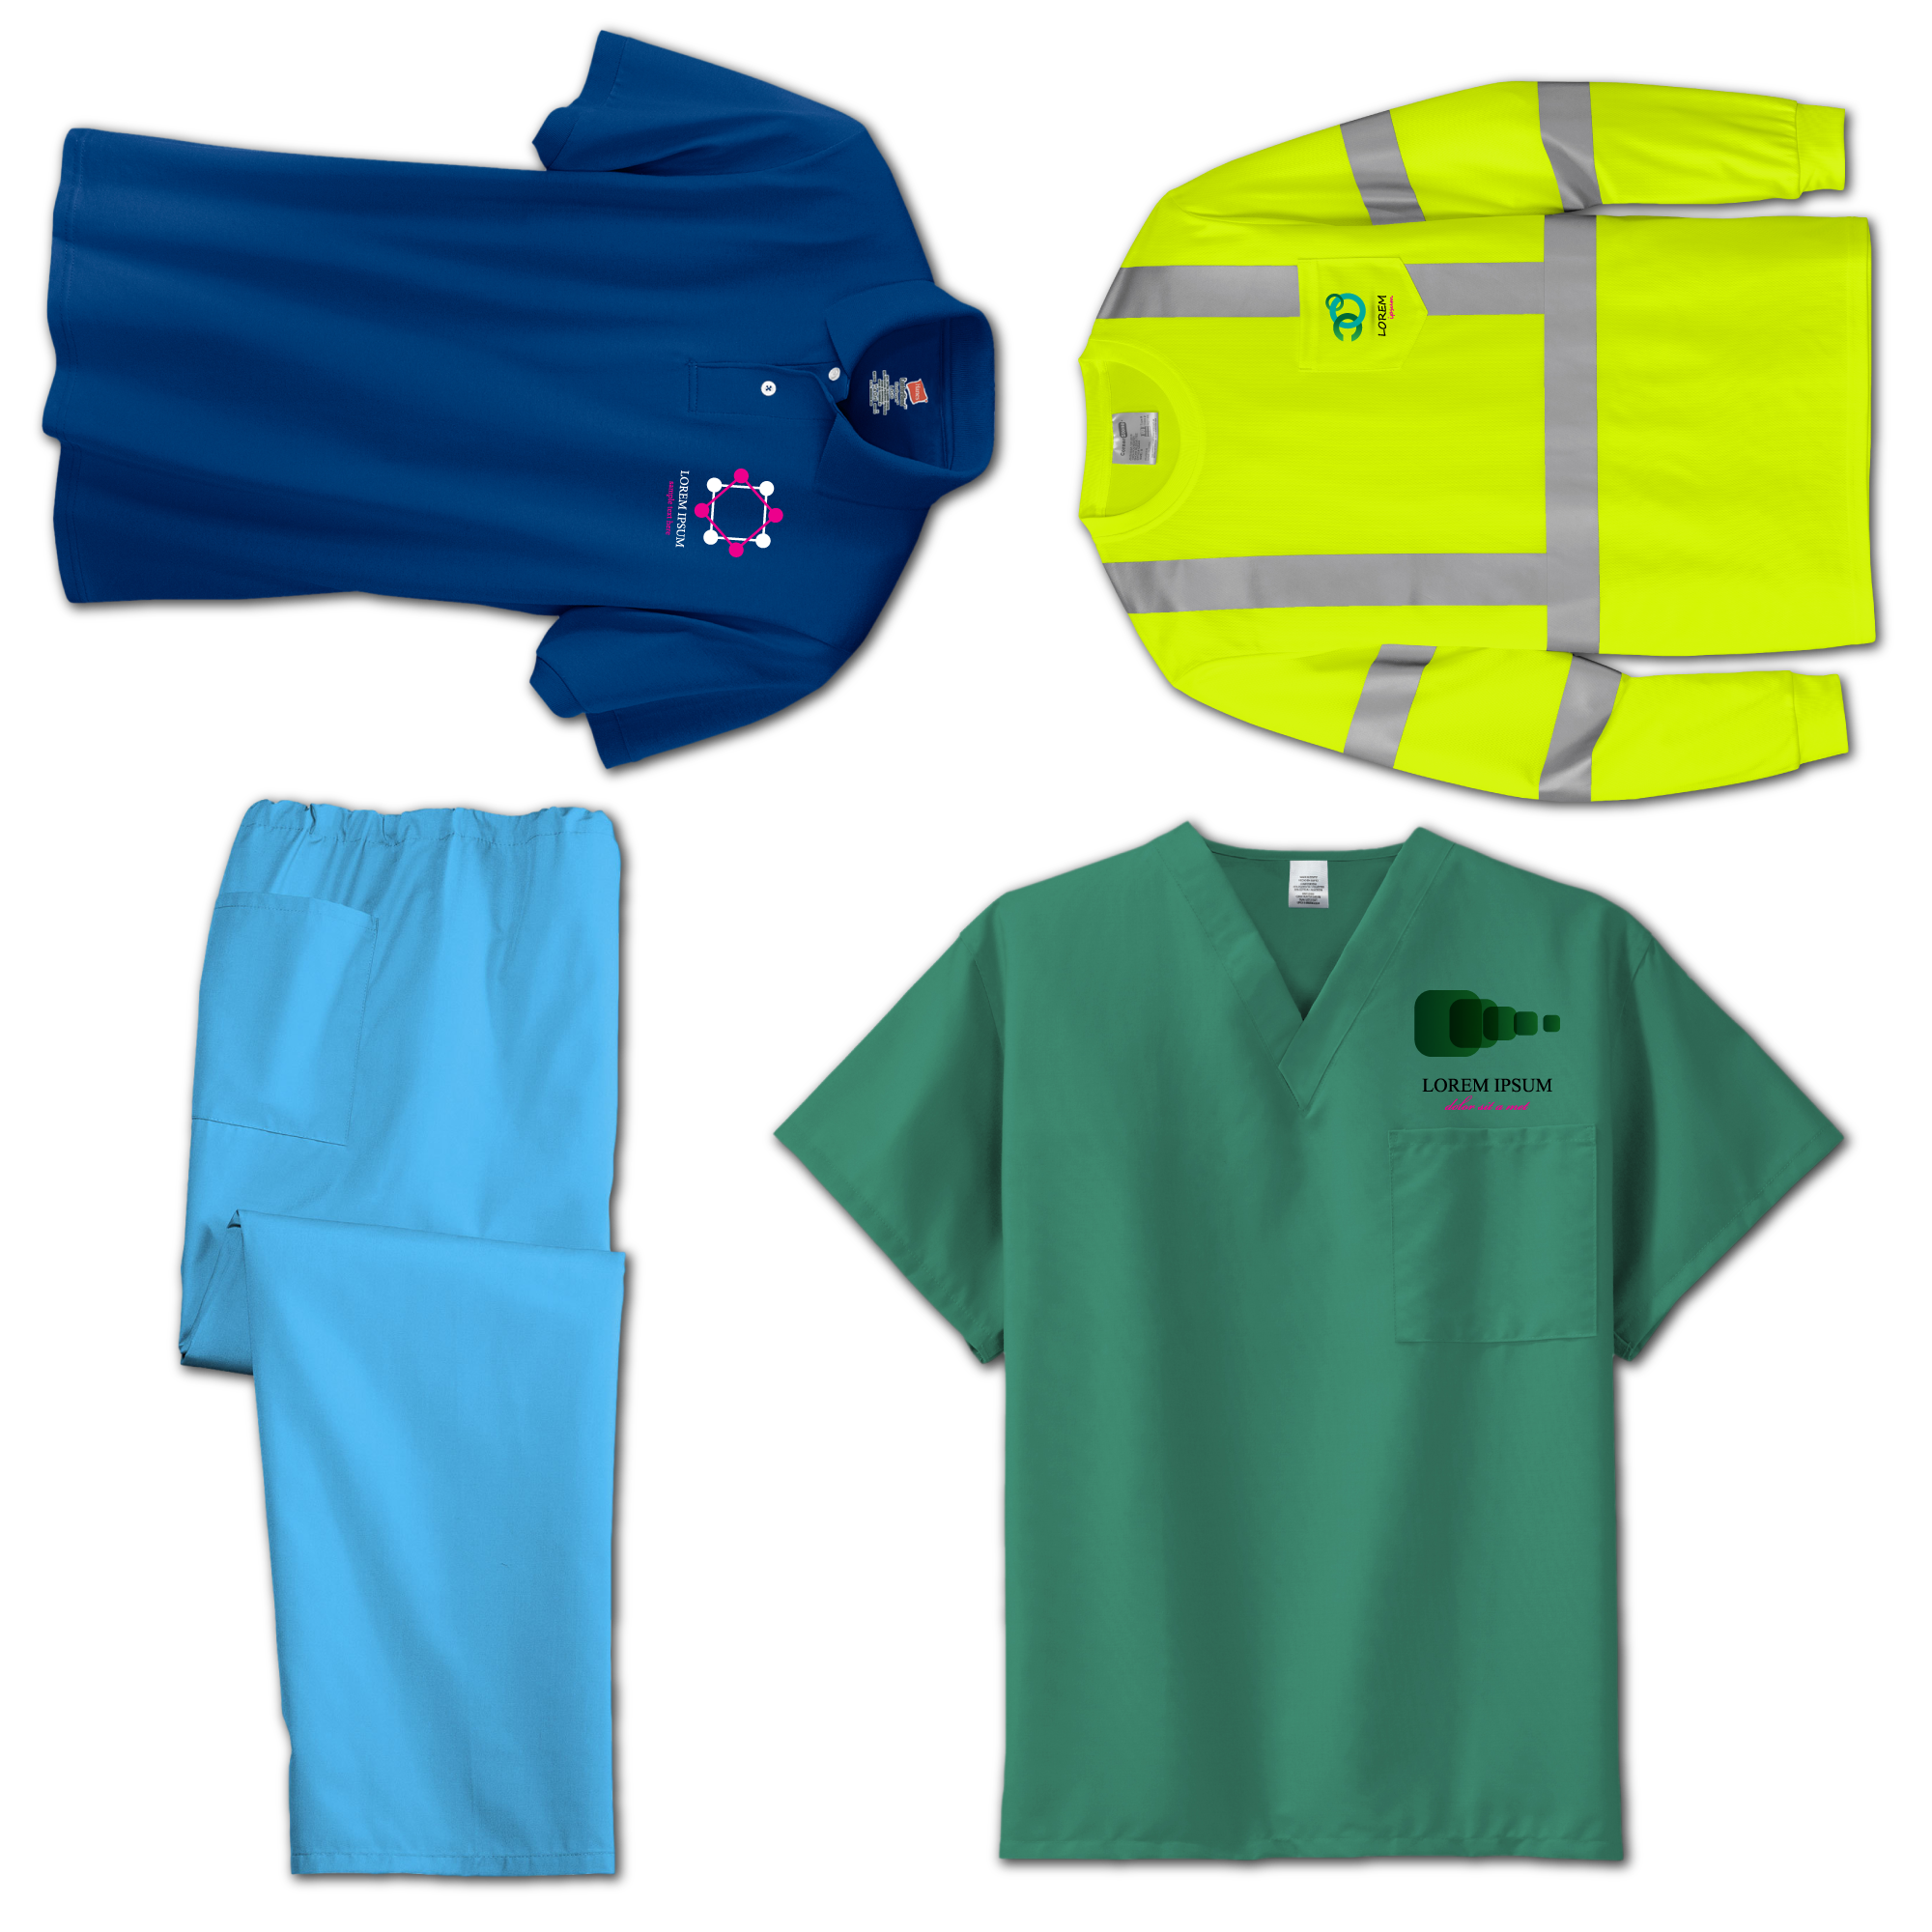 Industrial and construction apparel